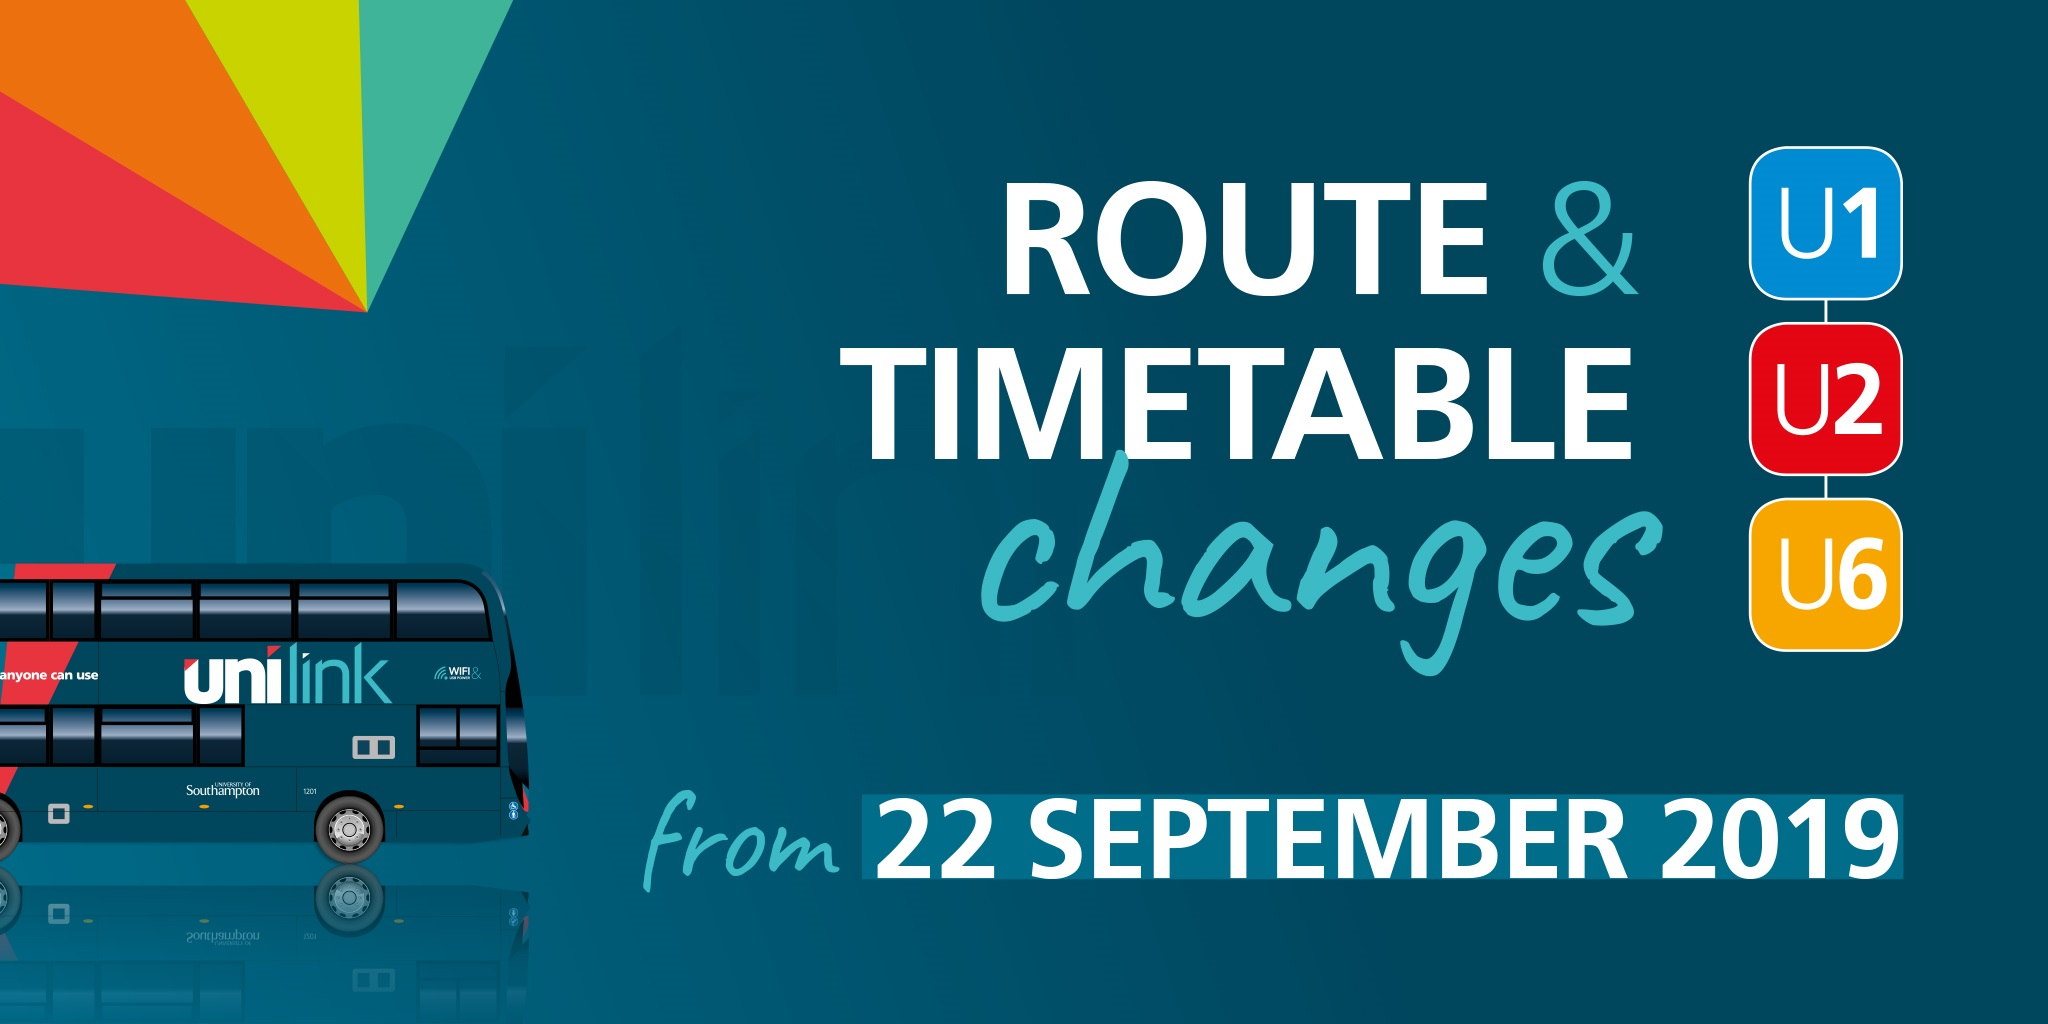 Unilink announces new timetable for its bus services in Southampton